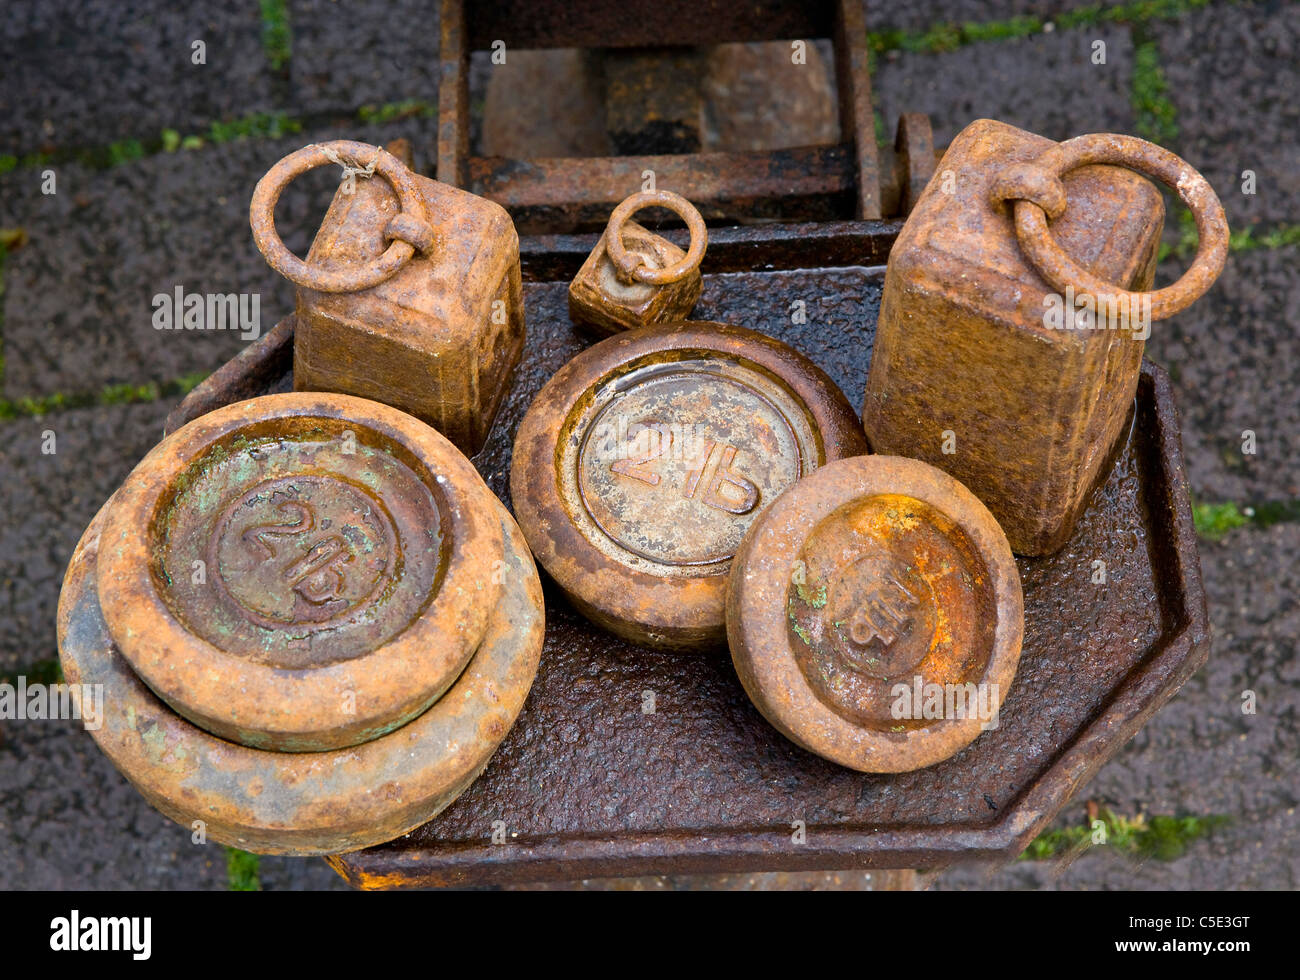 Old weights on scales - Stock Image